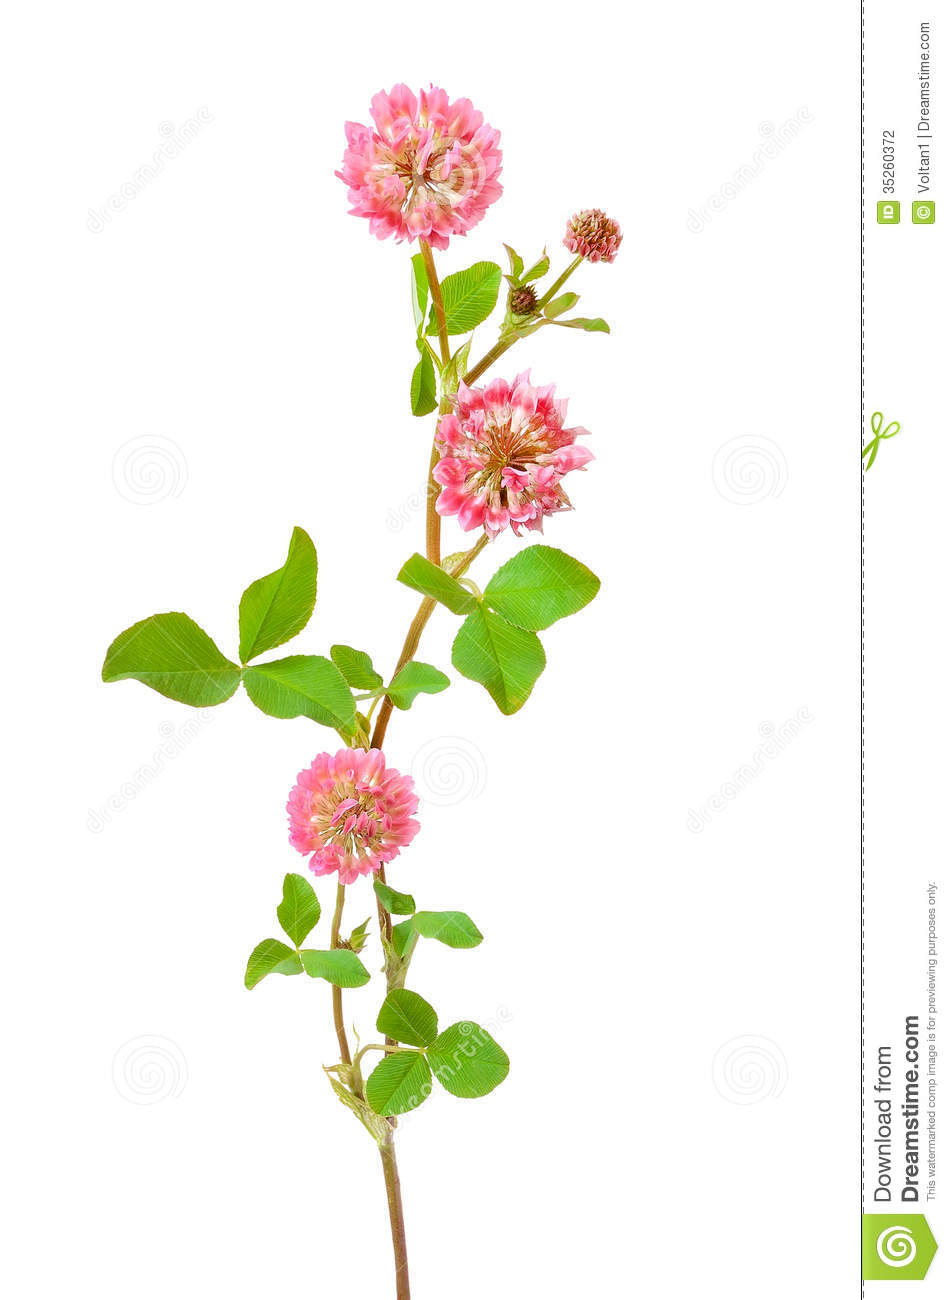 Pink Clover Flower Stock Photography - Image: 35260372